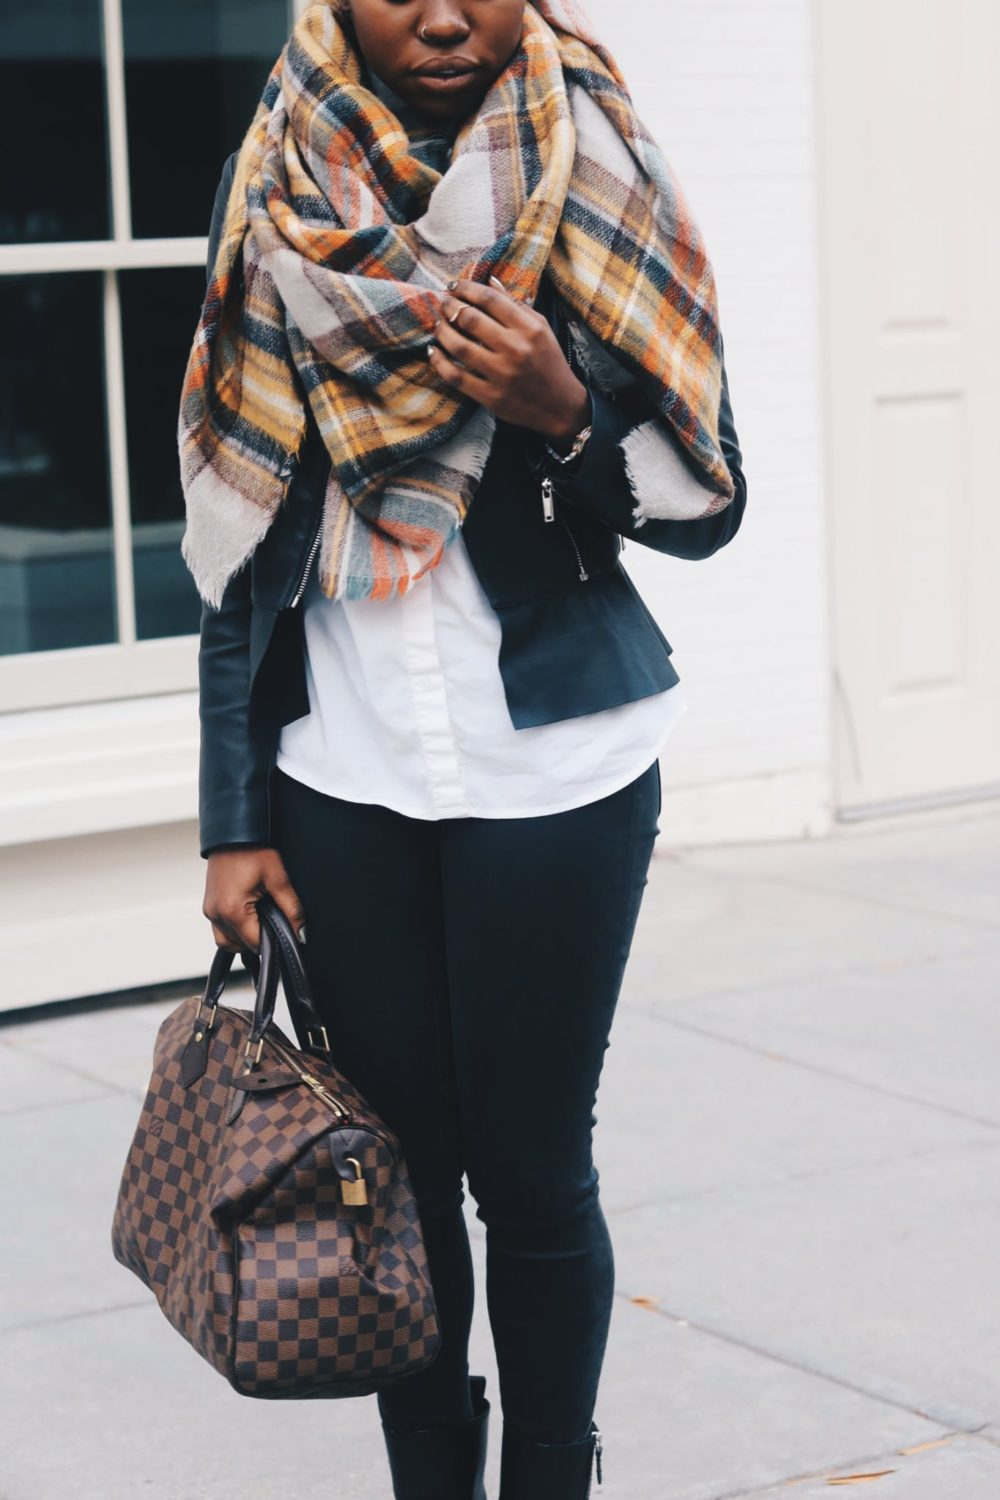 style-synopsis-leather-style-fall-look